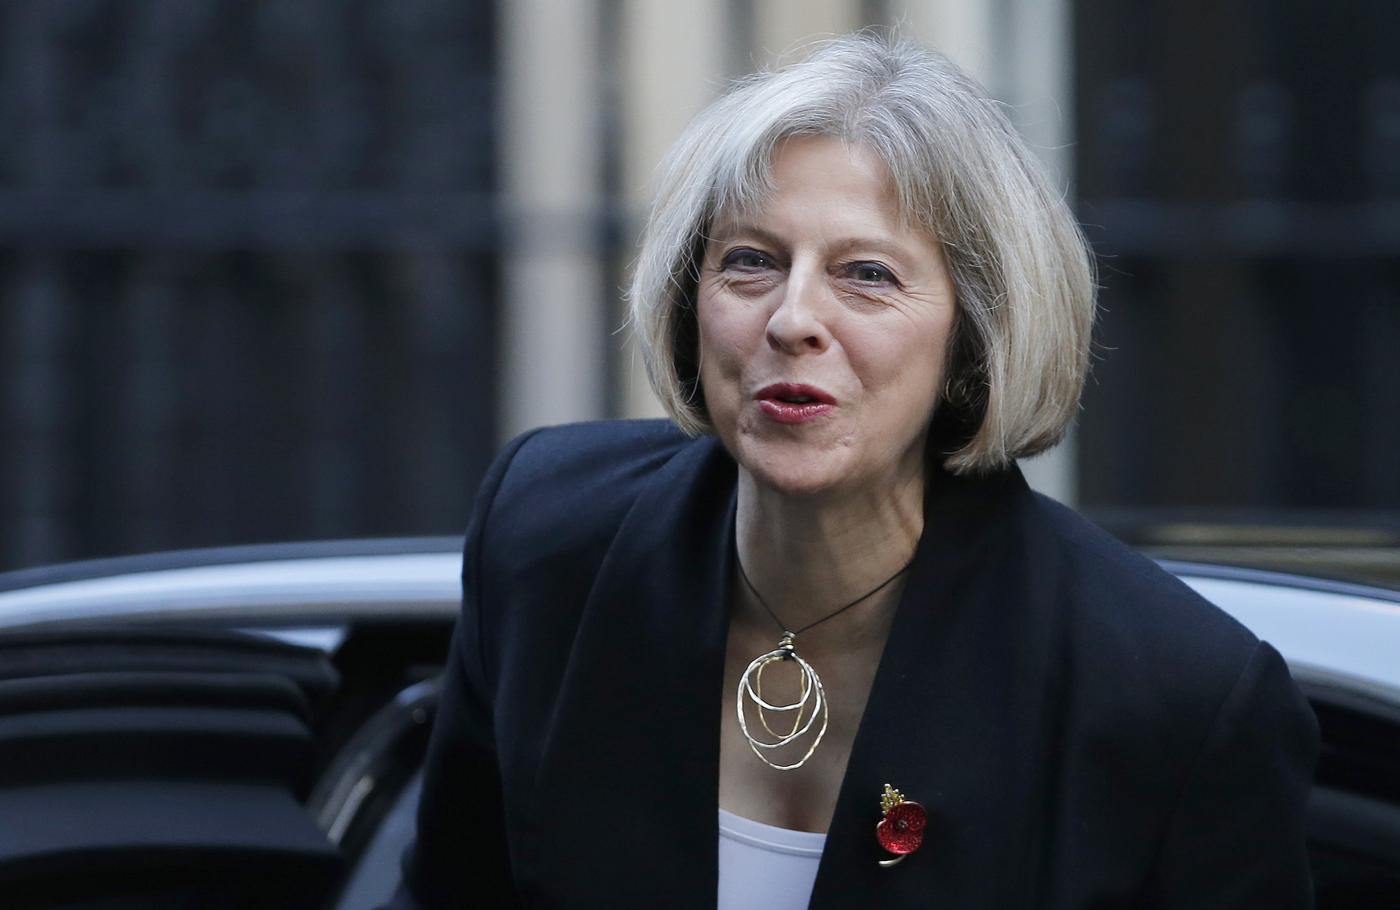 Targets to cut back migrants 'won't be hit', says May